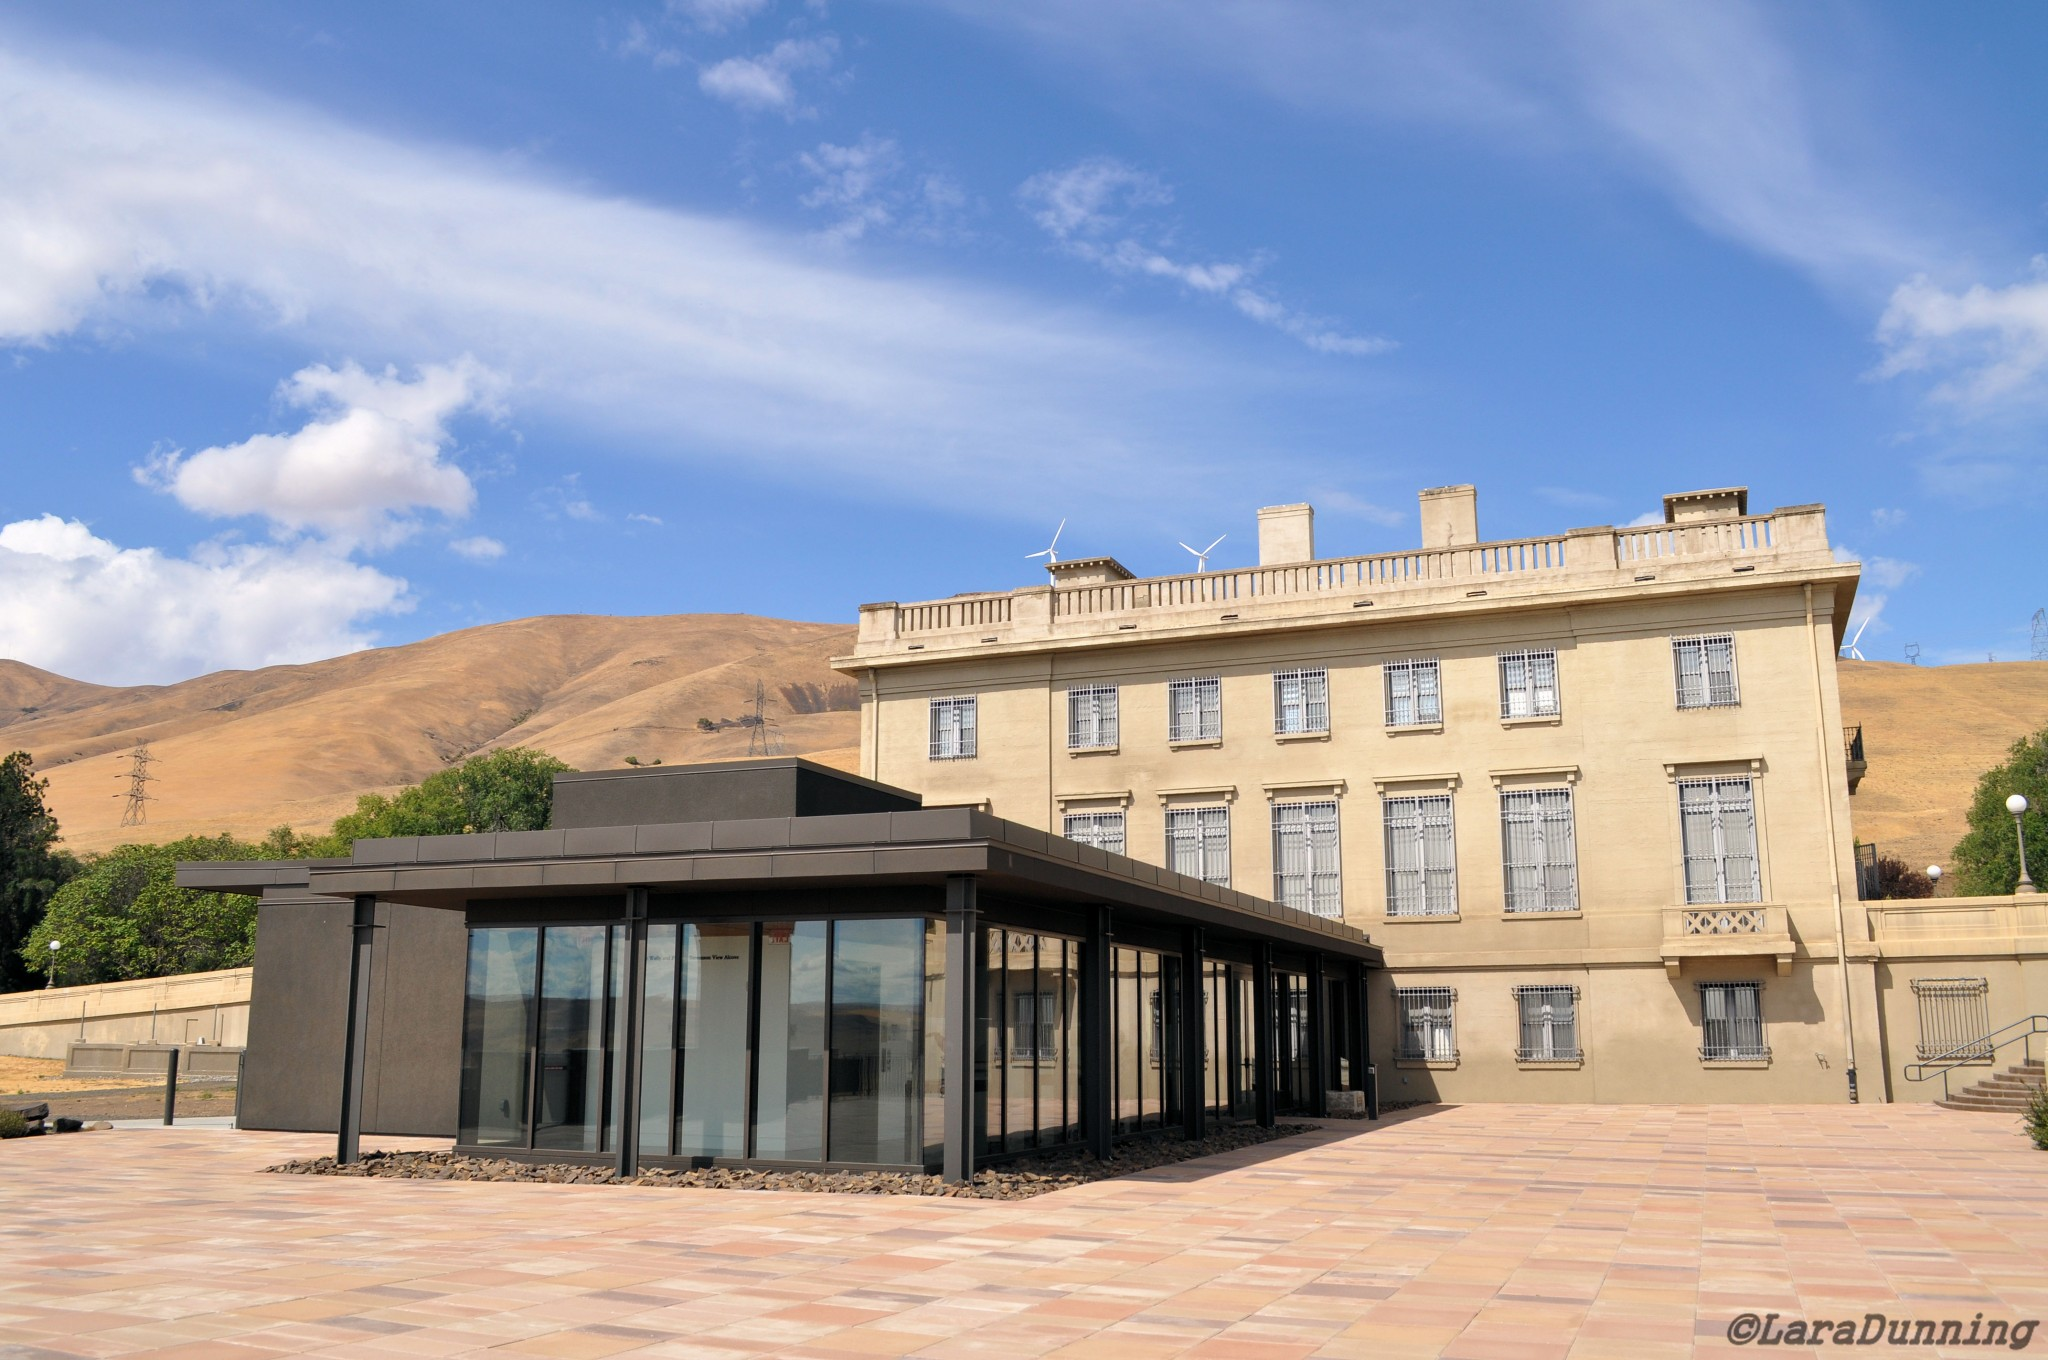 Maryhill Museum of Art in Maryhill, Washington.